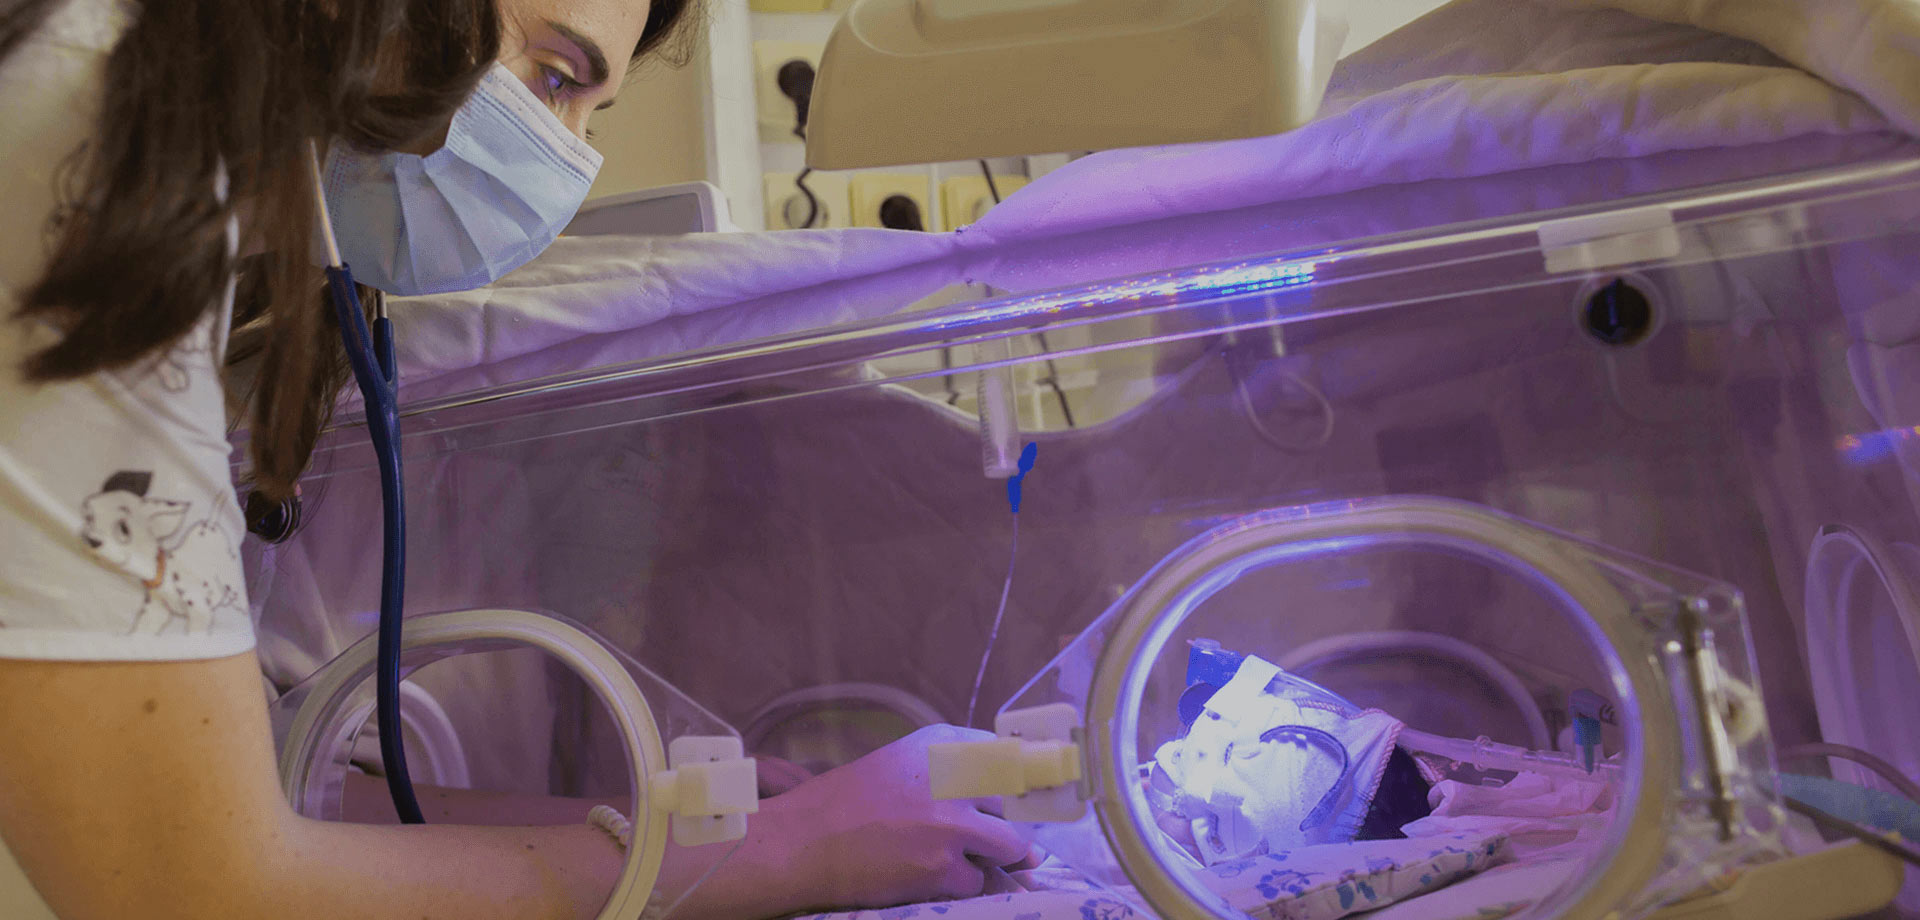 Doctor assisting a preterm infant in the Neonatal Intensive Therapy Unit